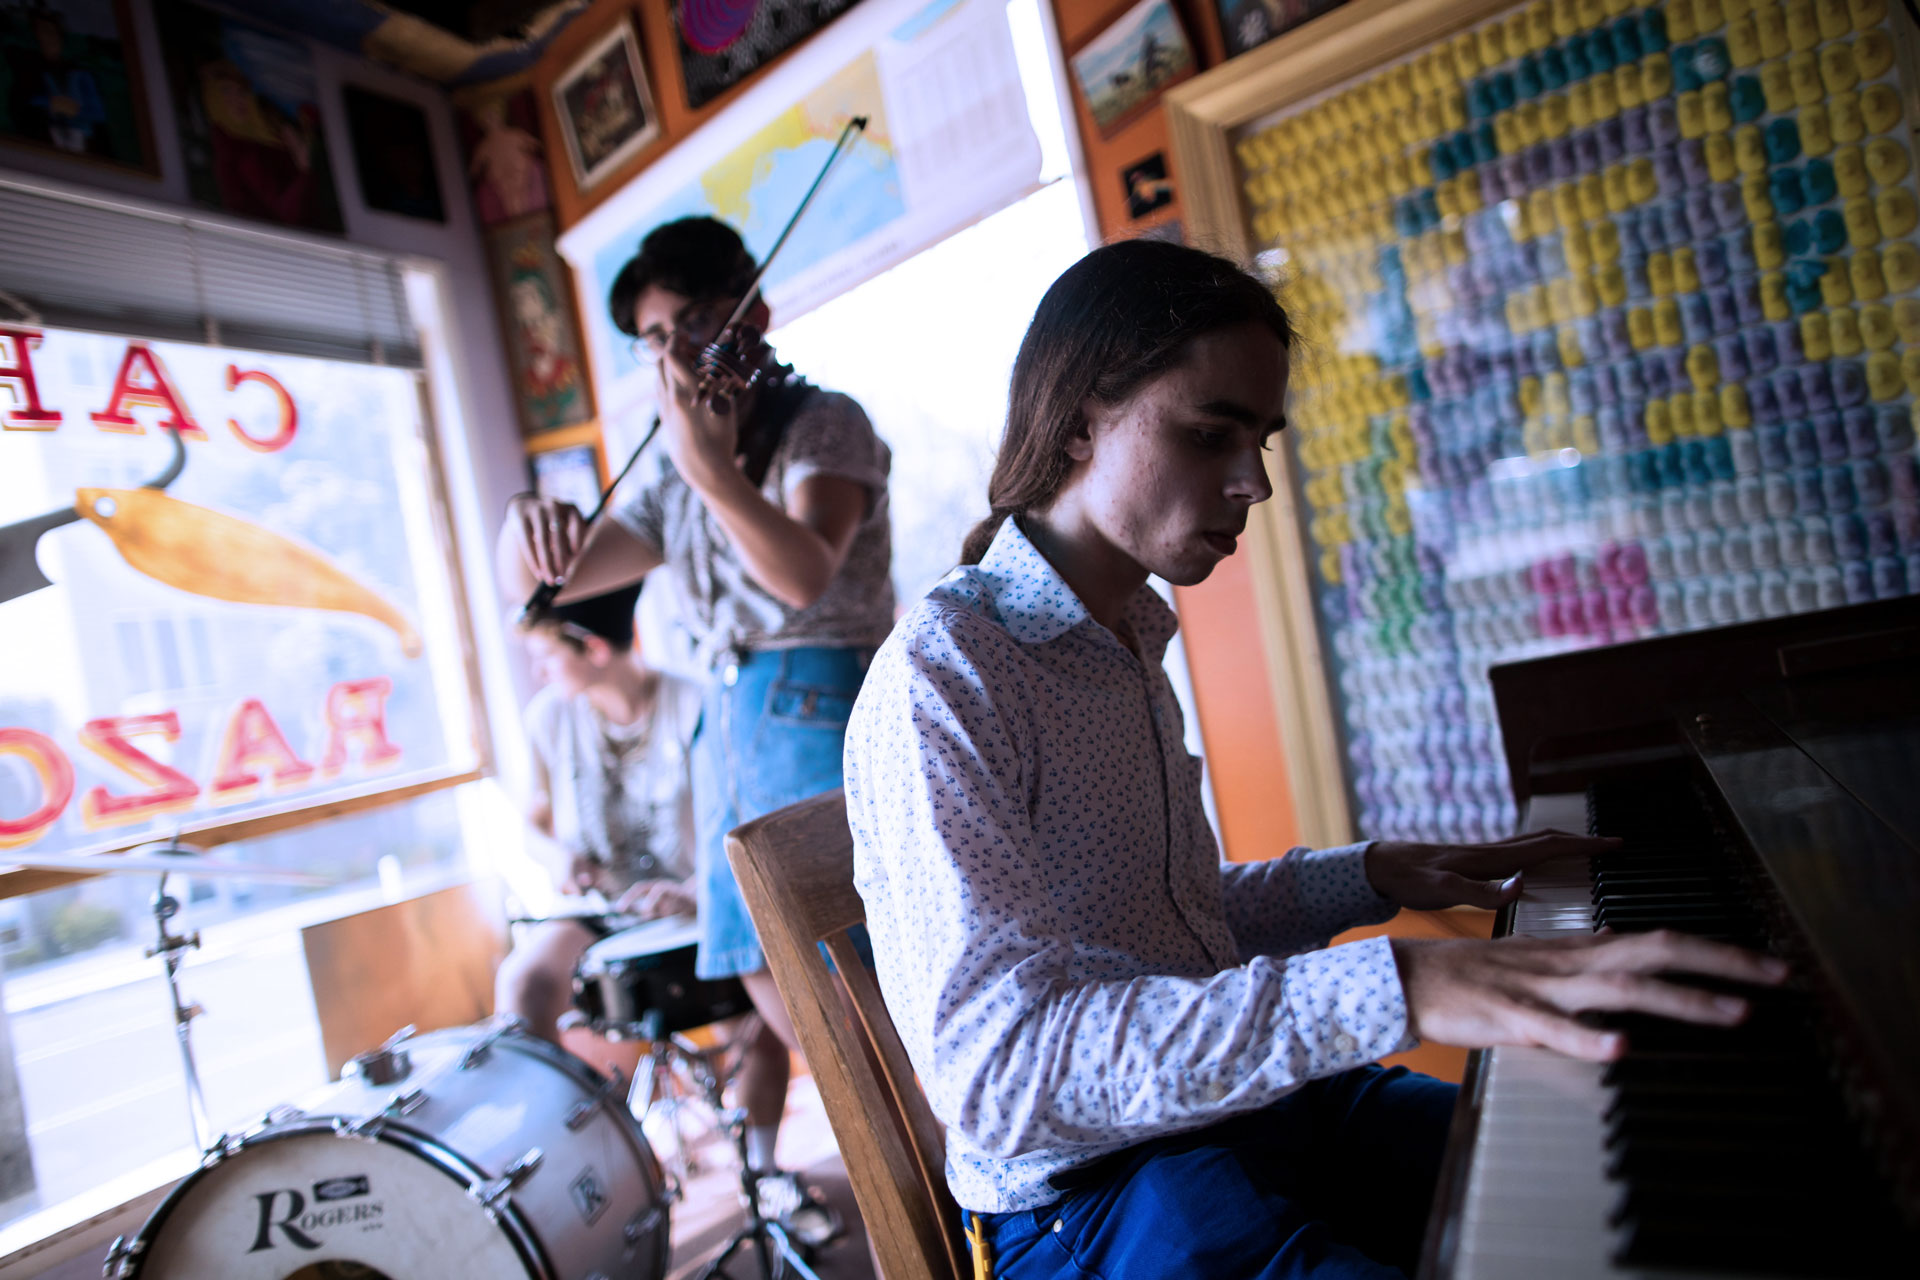 Photo musicians playing together, drums, piano, violin